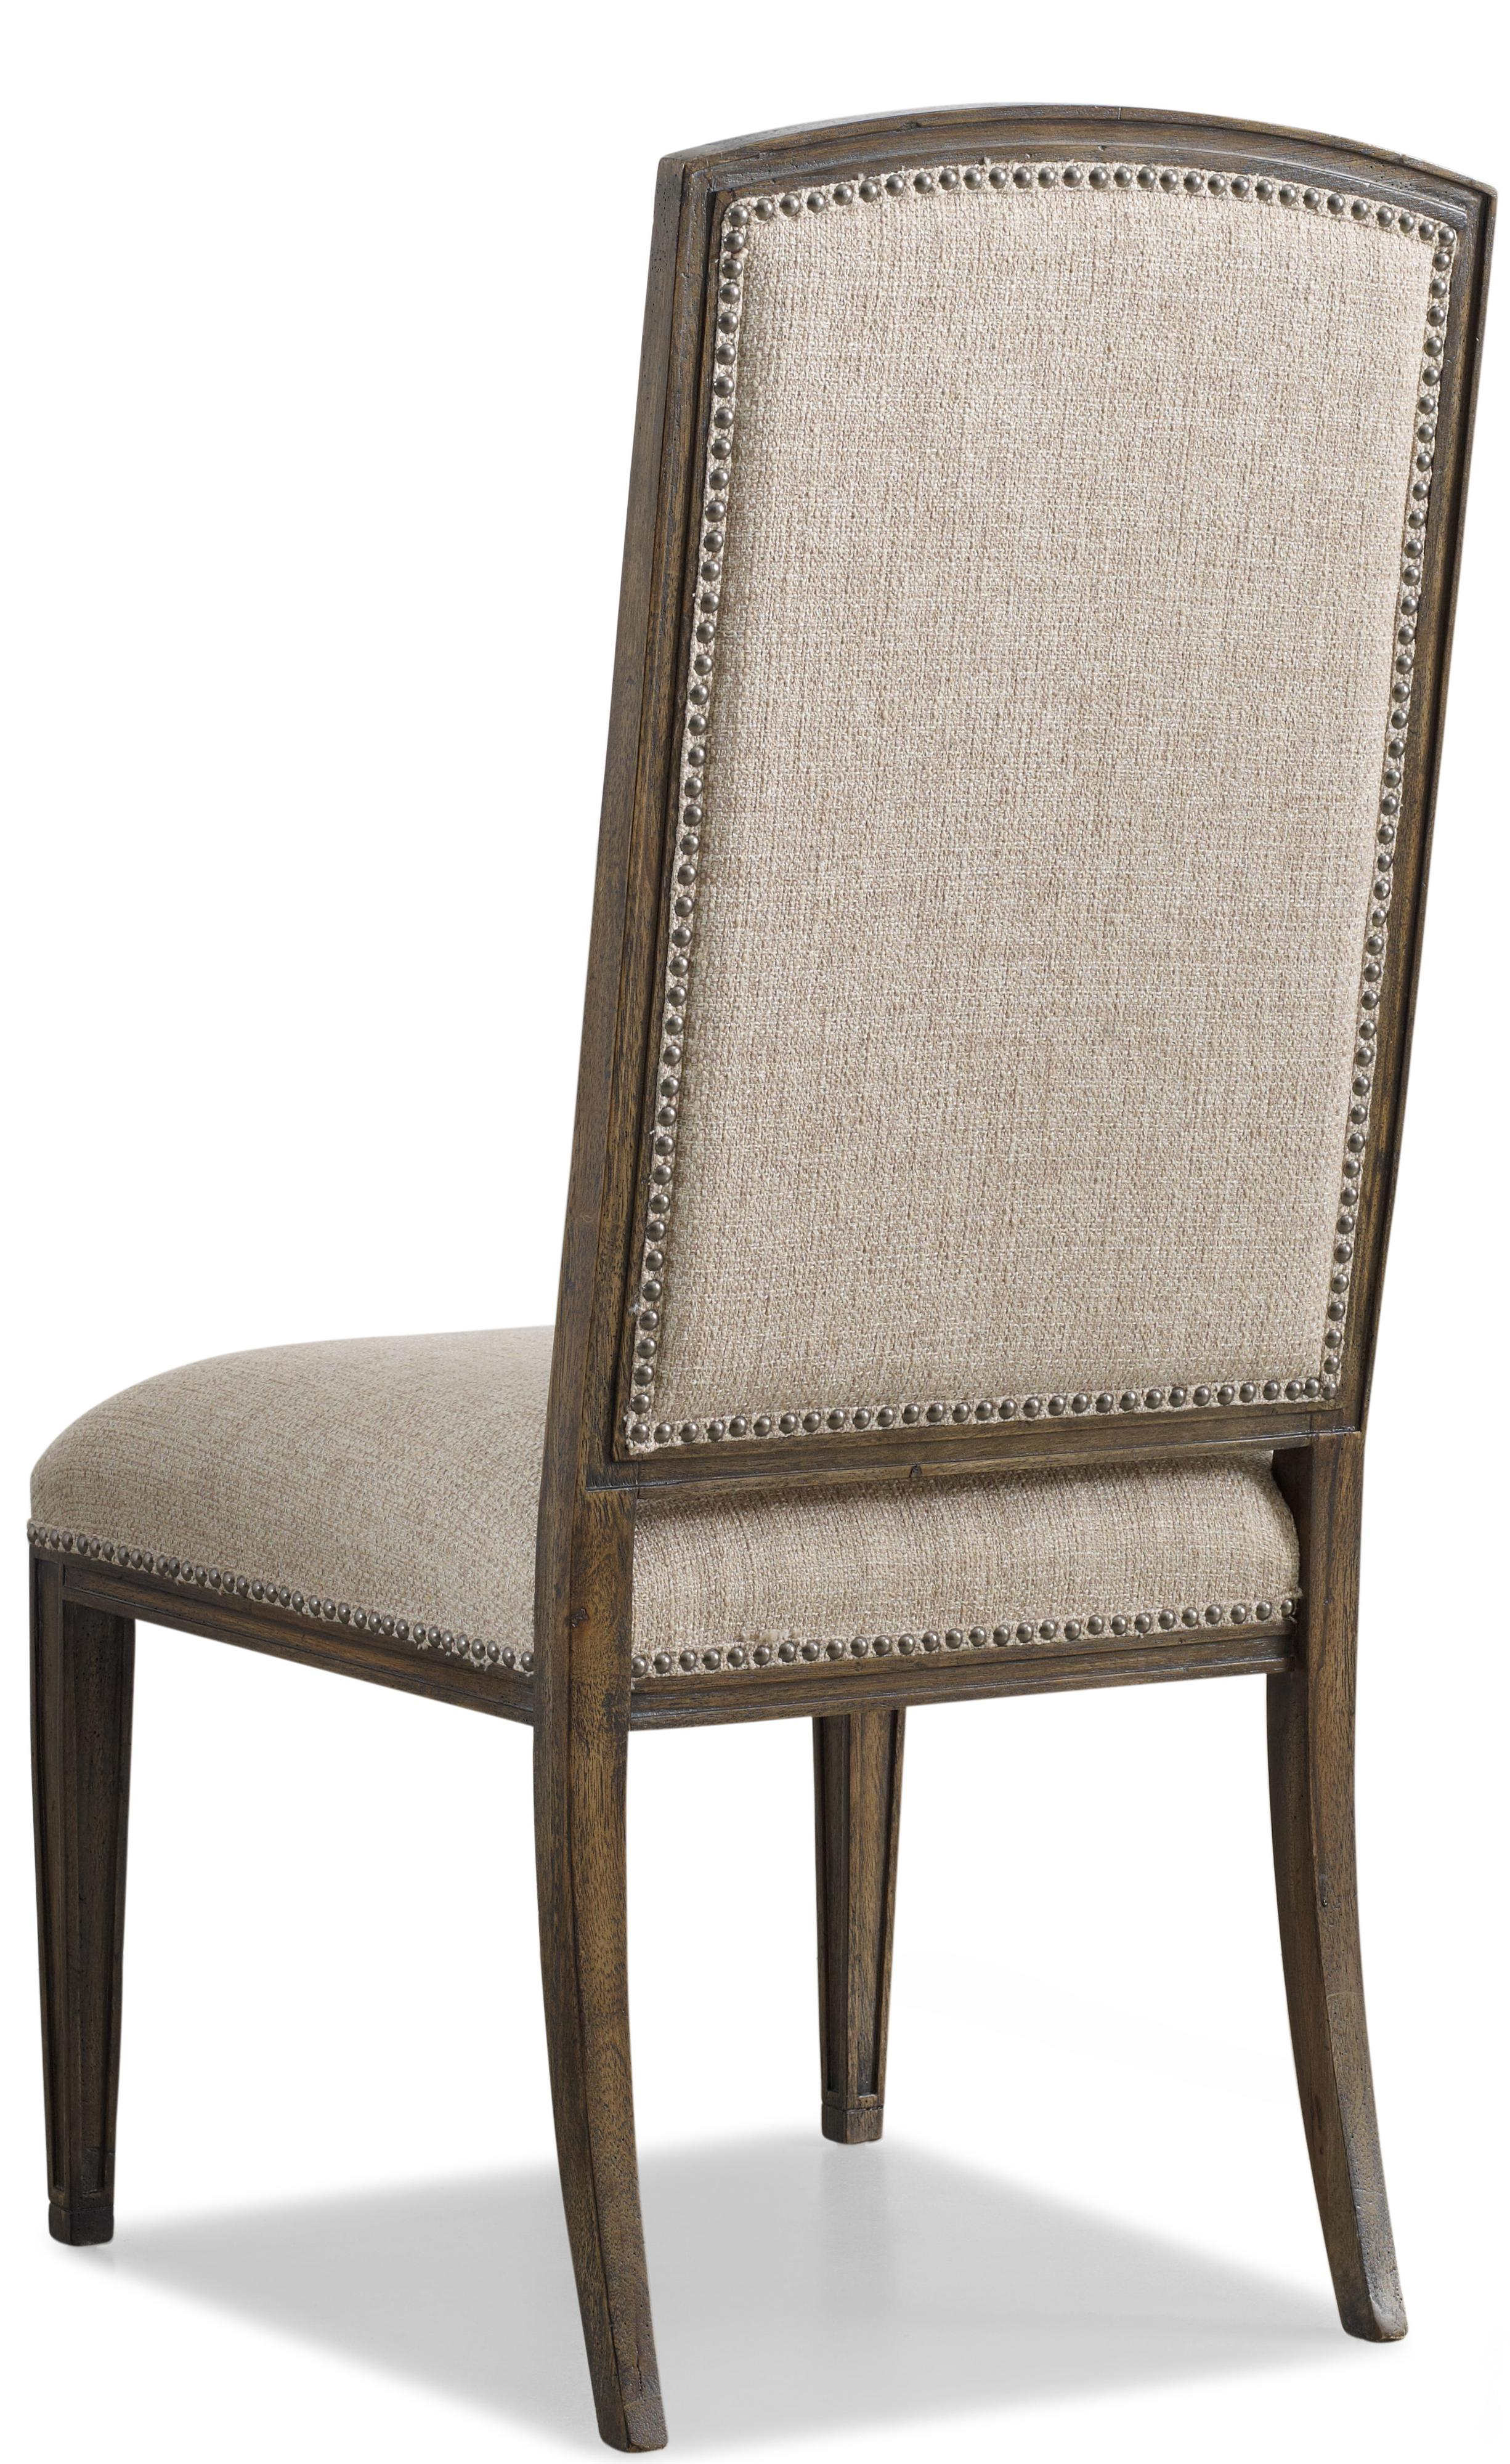 Hooker Furniture Rhapsody Side Chair - Item Number: 5070-75410